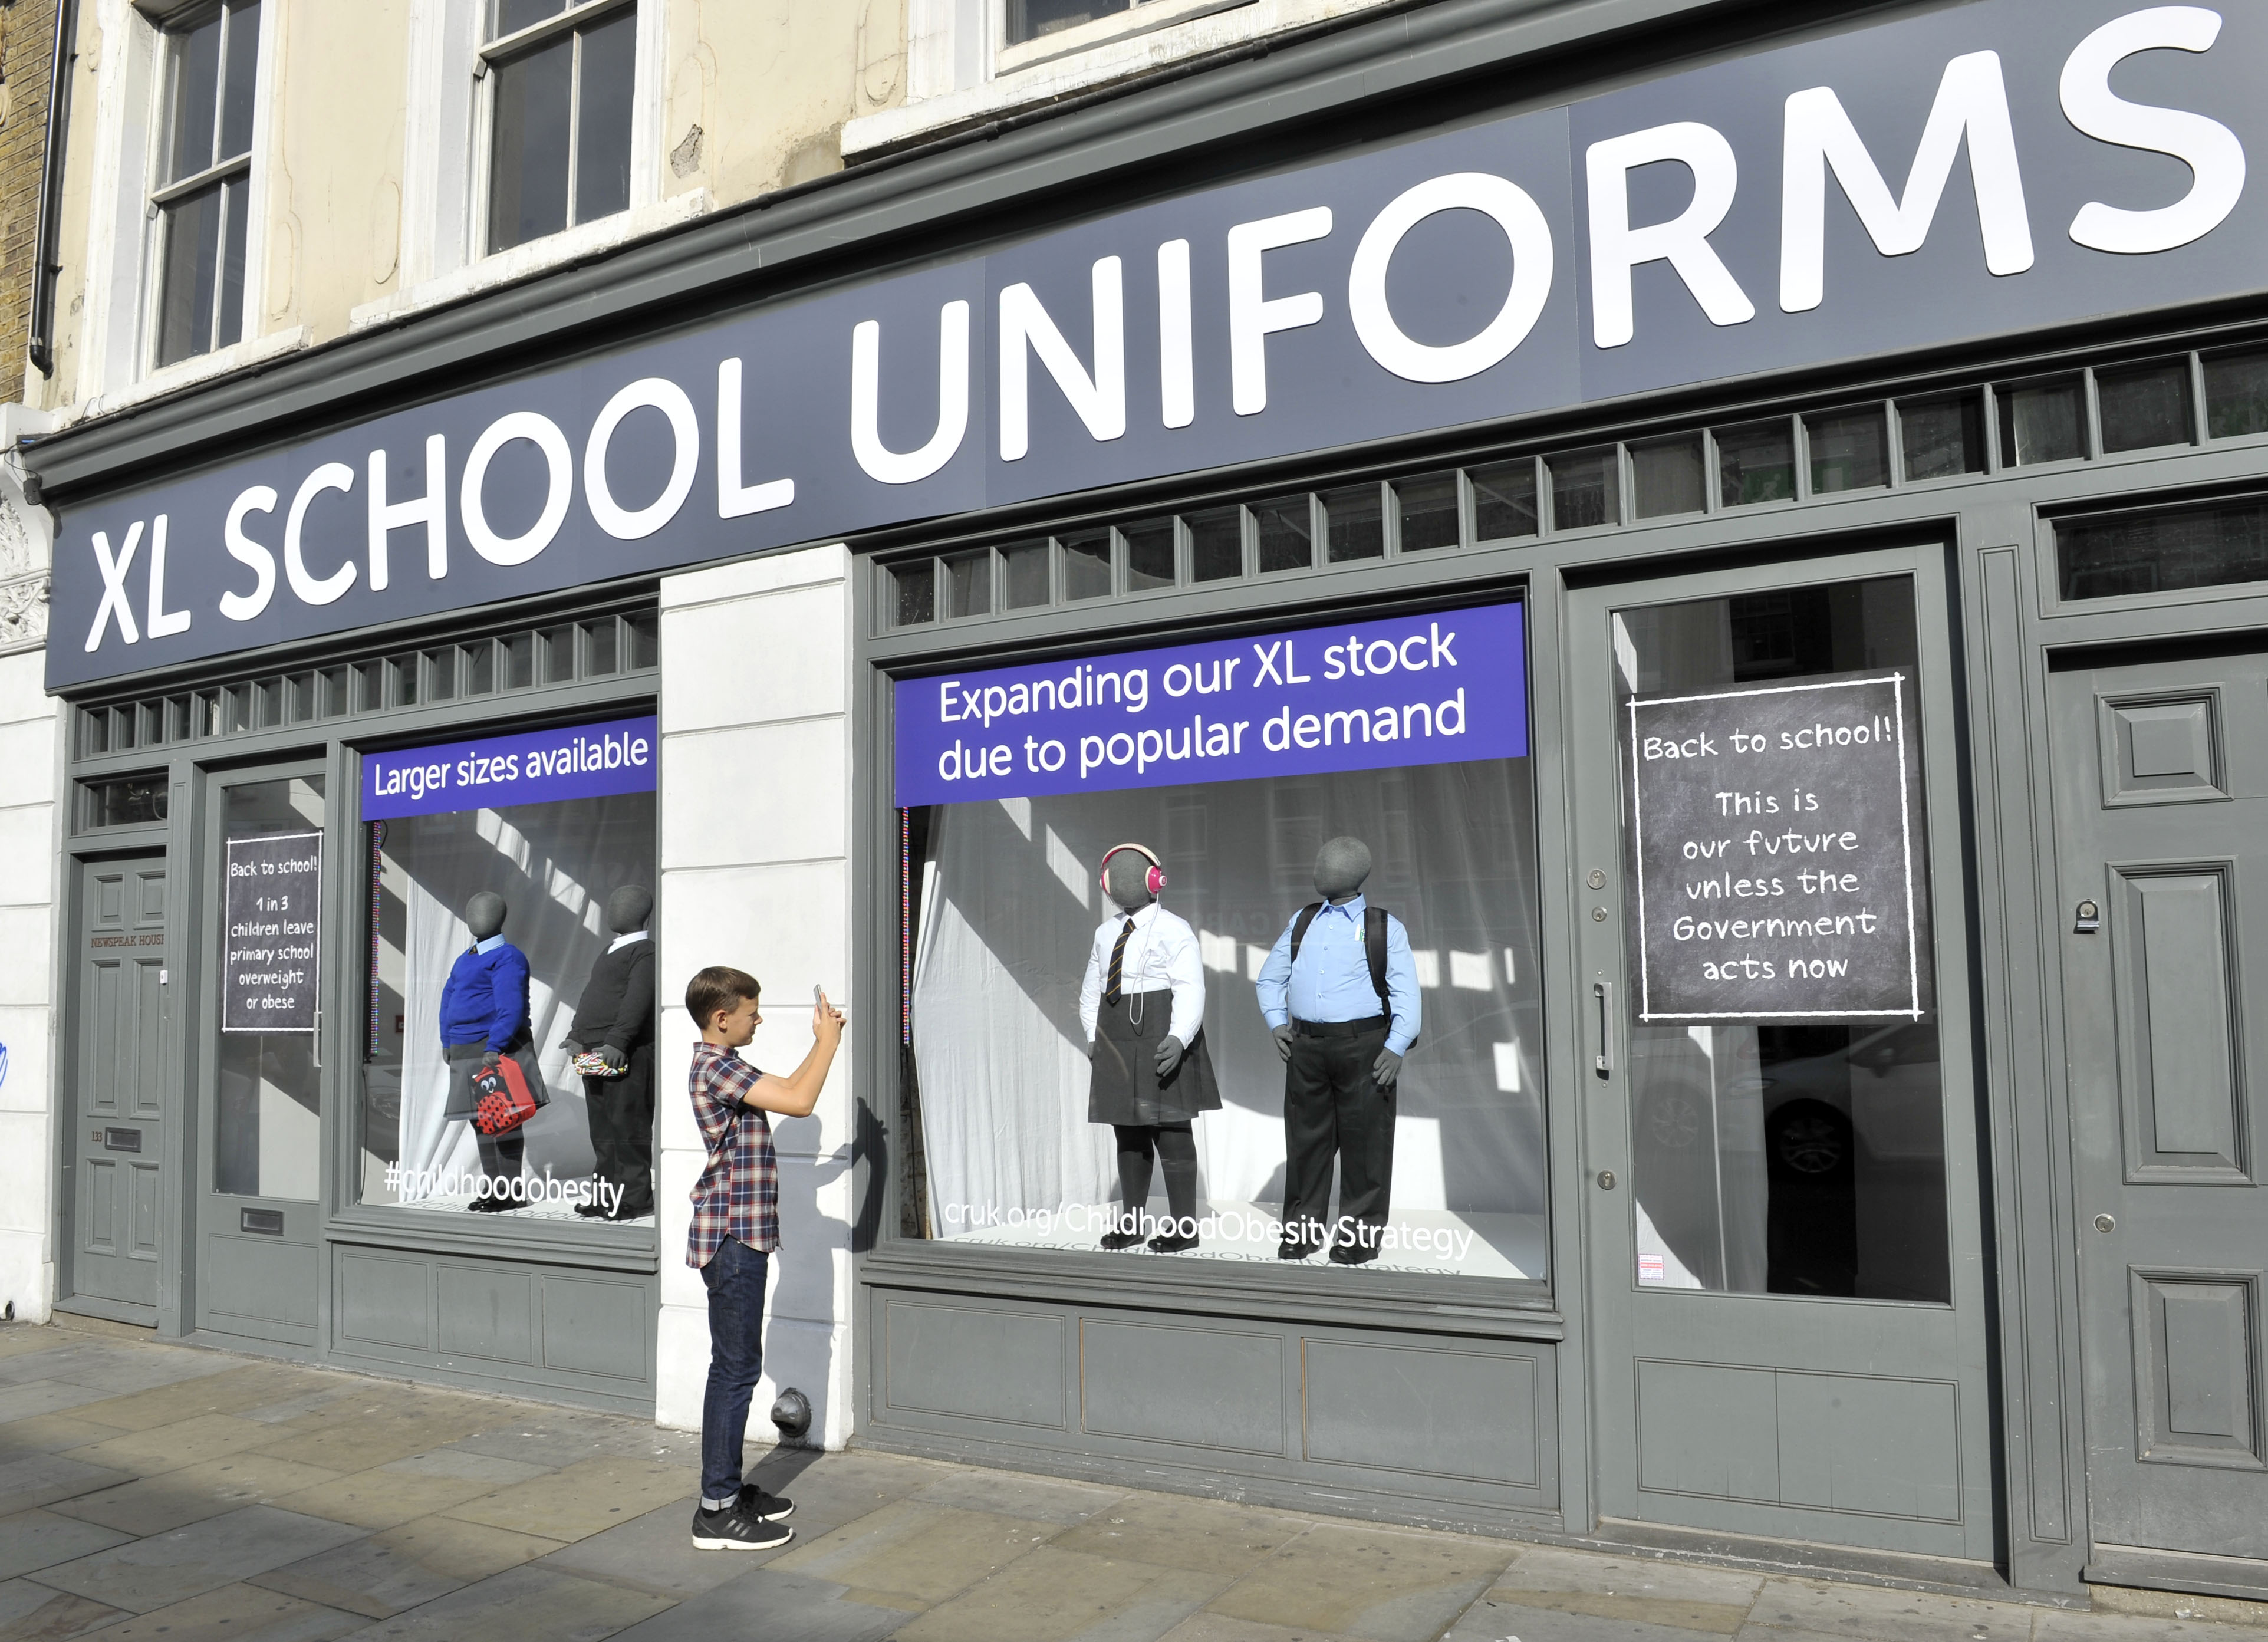 A young boy in a checked shirt takes a photo of a window display containing obese mannequins in tight school uniforms.